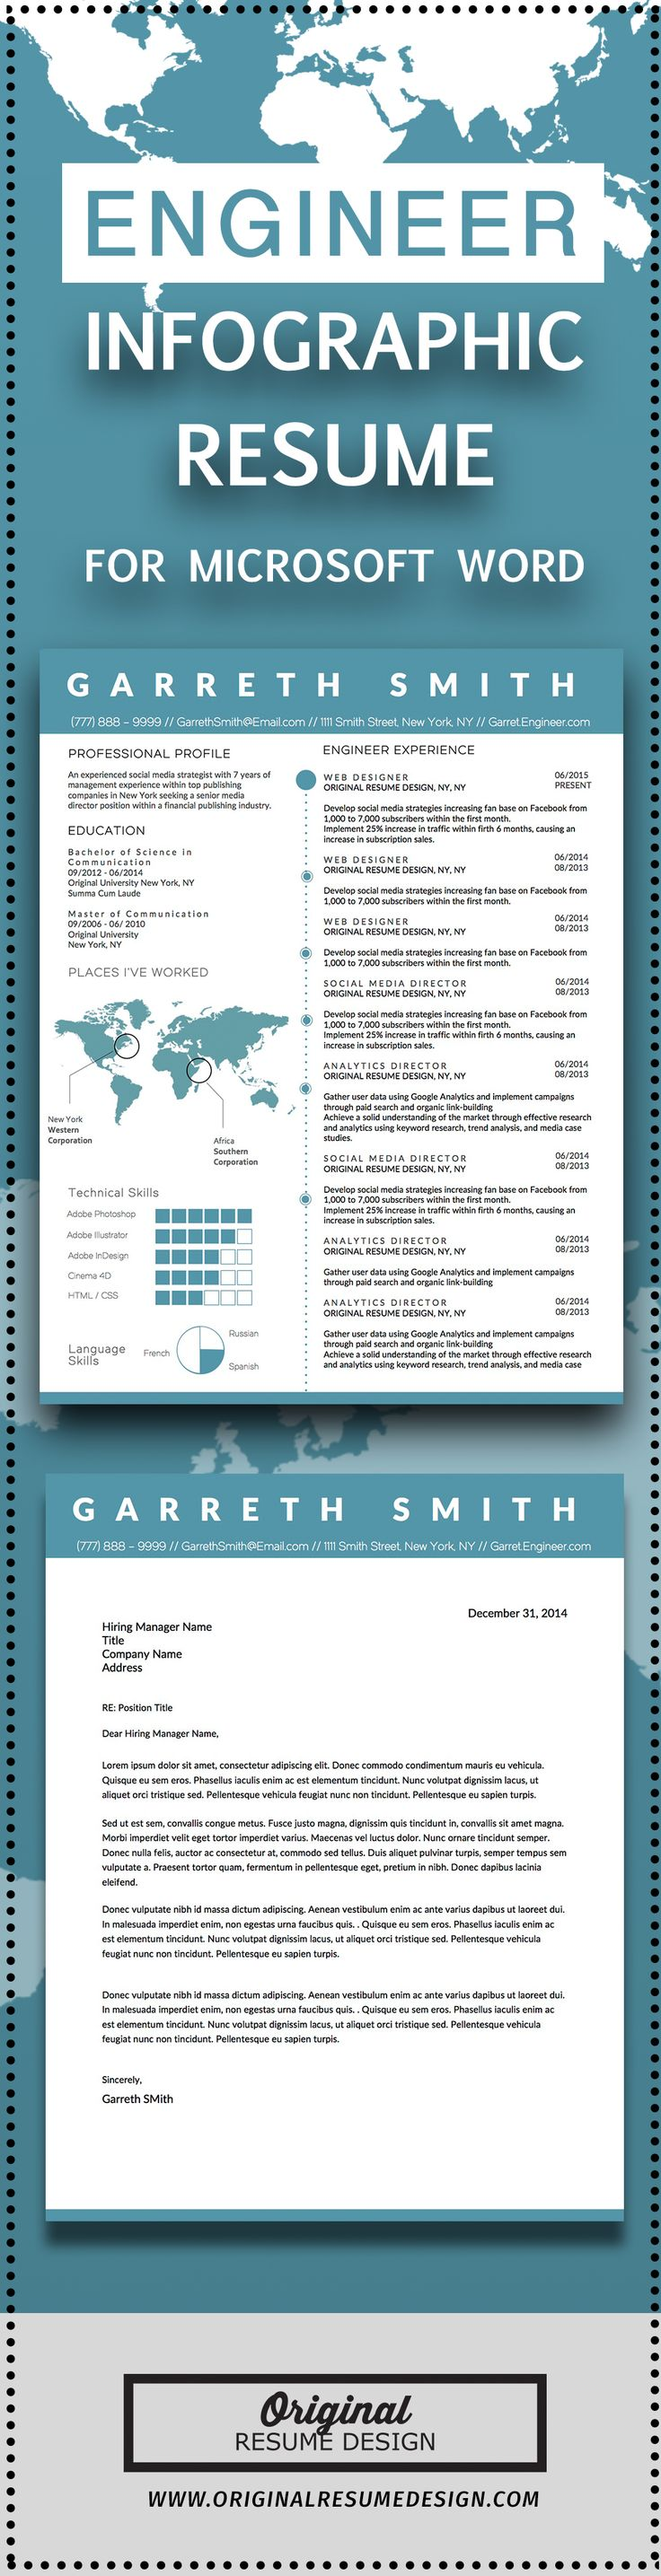 Infographic Cv Template Microsoft Word - Softwaremonster.Info